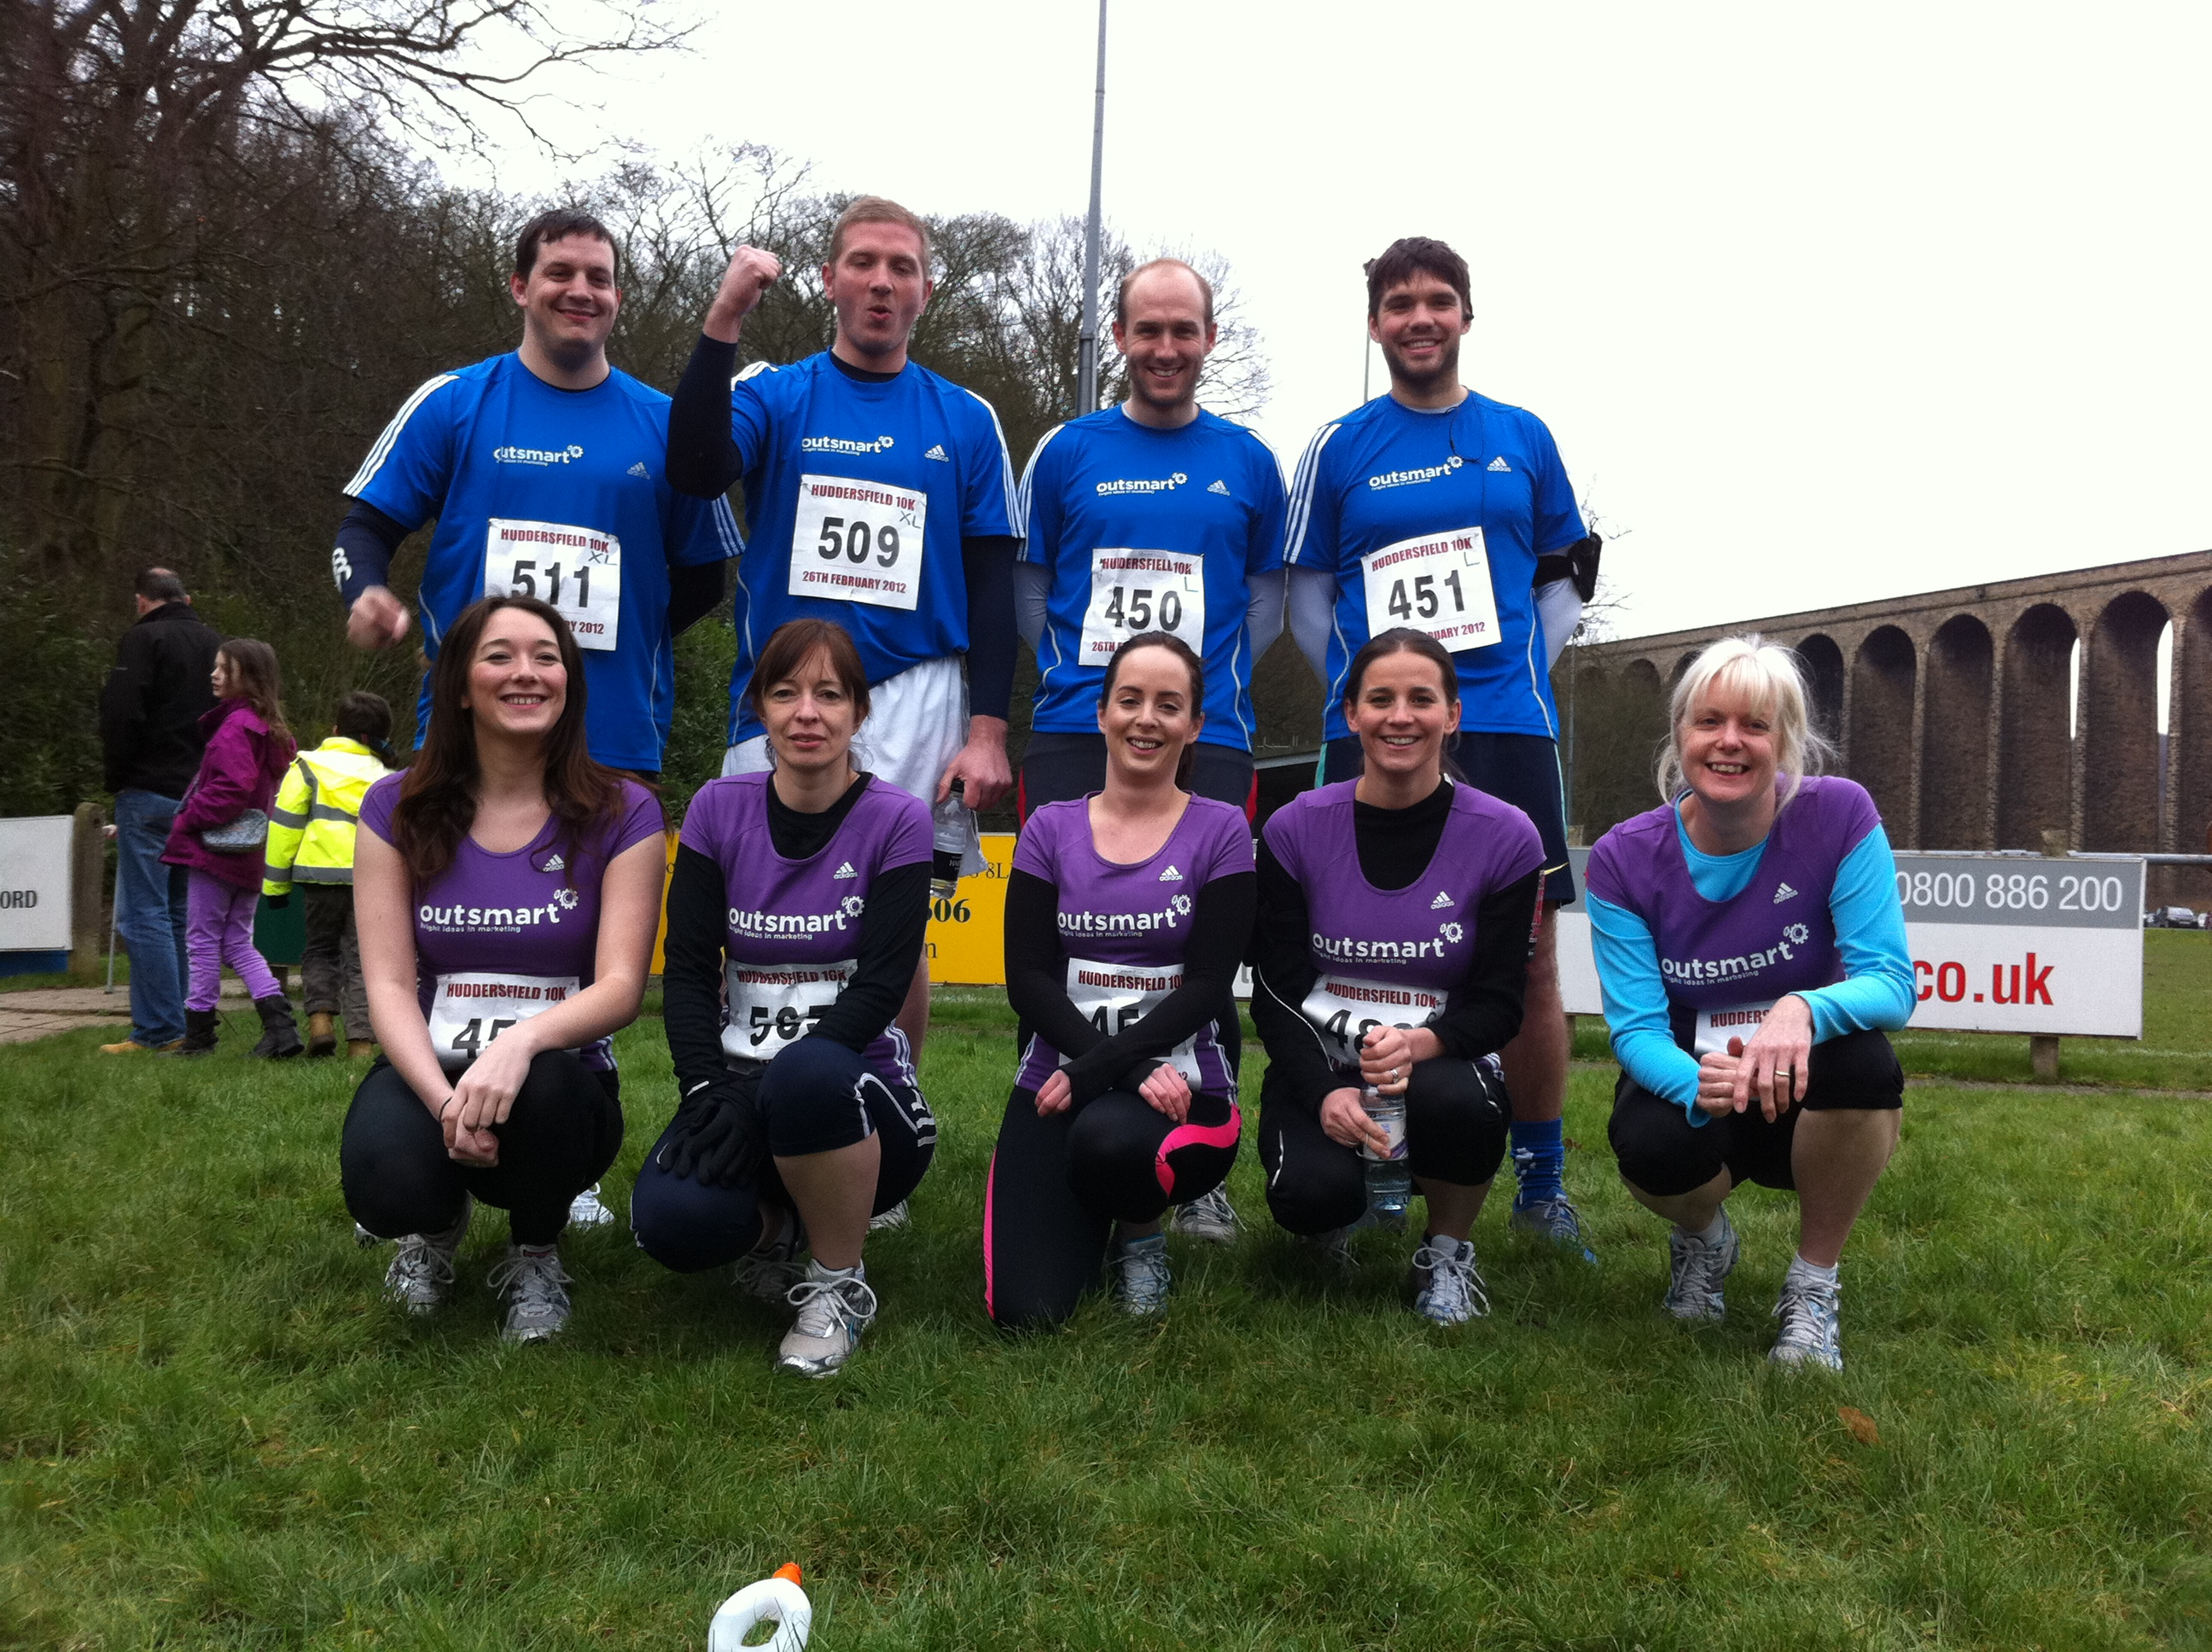 Team Outsmart Huddersfield 10k